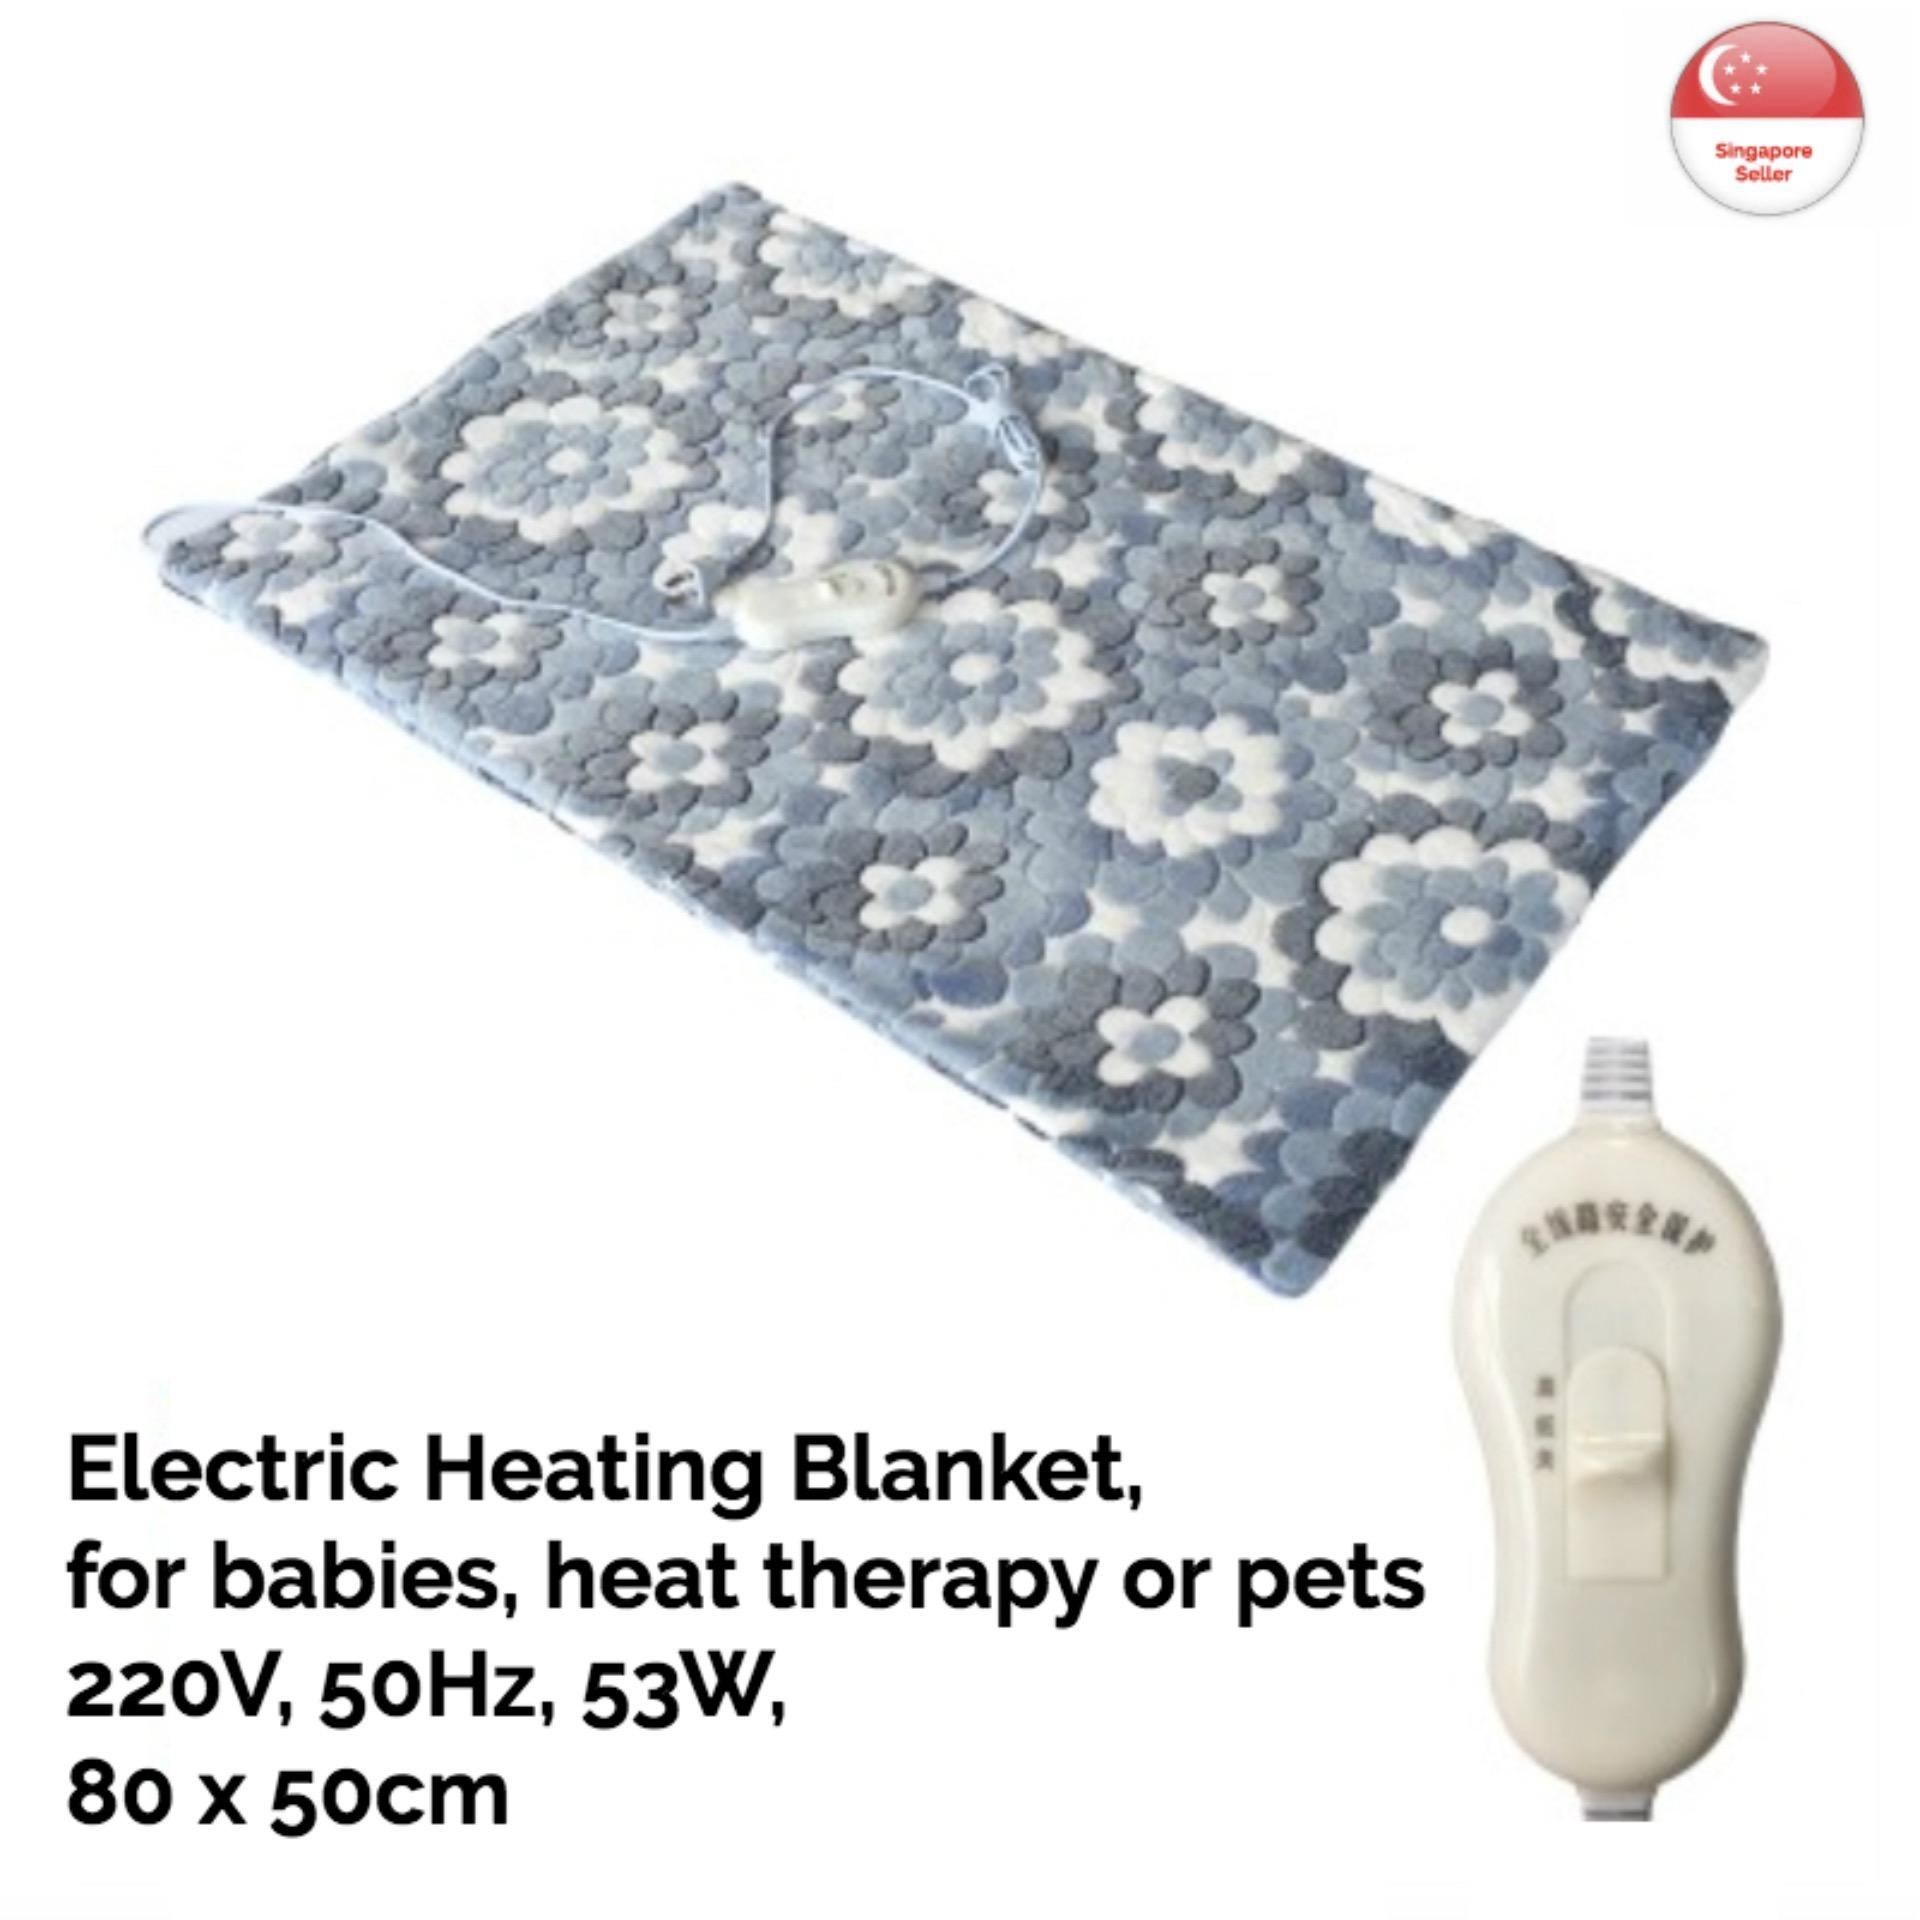 Electric Heating Blanket - Blue, 53w, 80 X 50cm, Pad, Mat, Scarf, Home, 2-Heating Levels, Heat, Therapy, Baby, Elderly, Pets, Mini, Ultra-Soft Fabric, Flower-Design By Bringit.